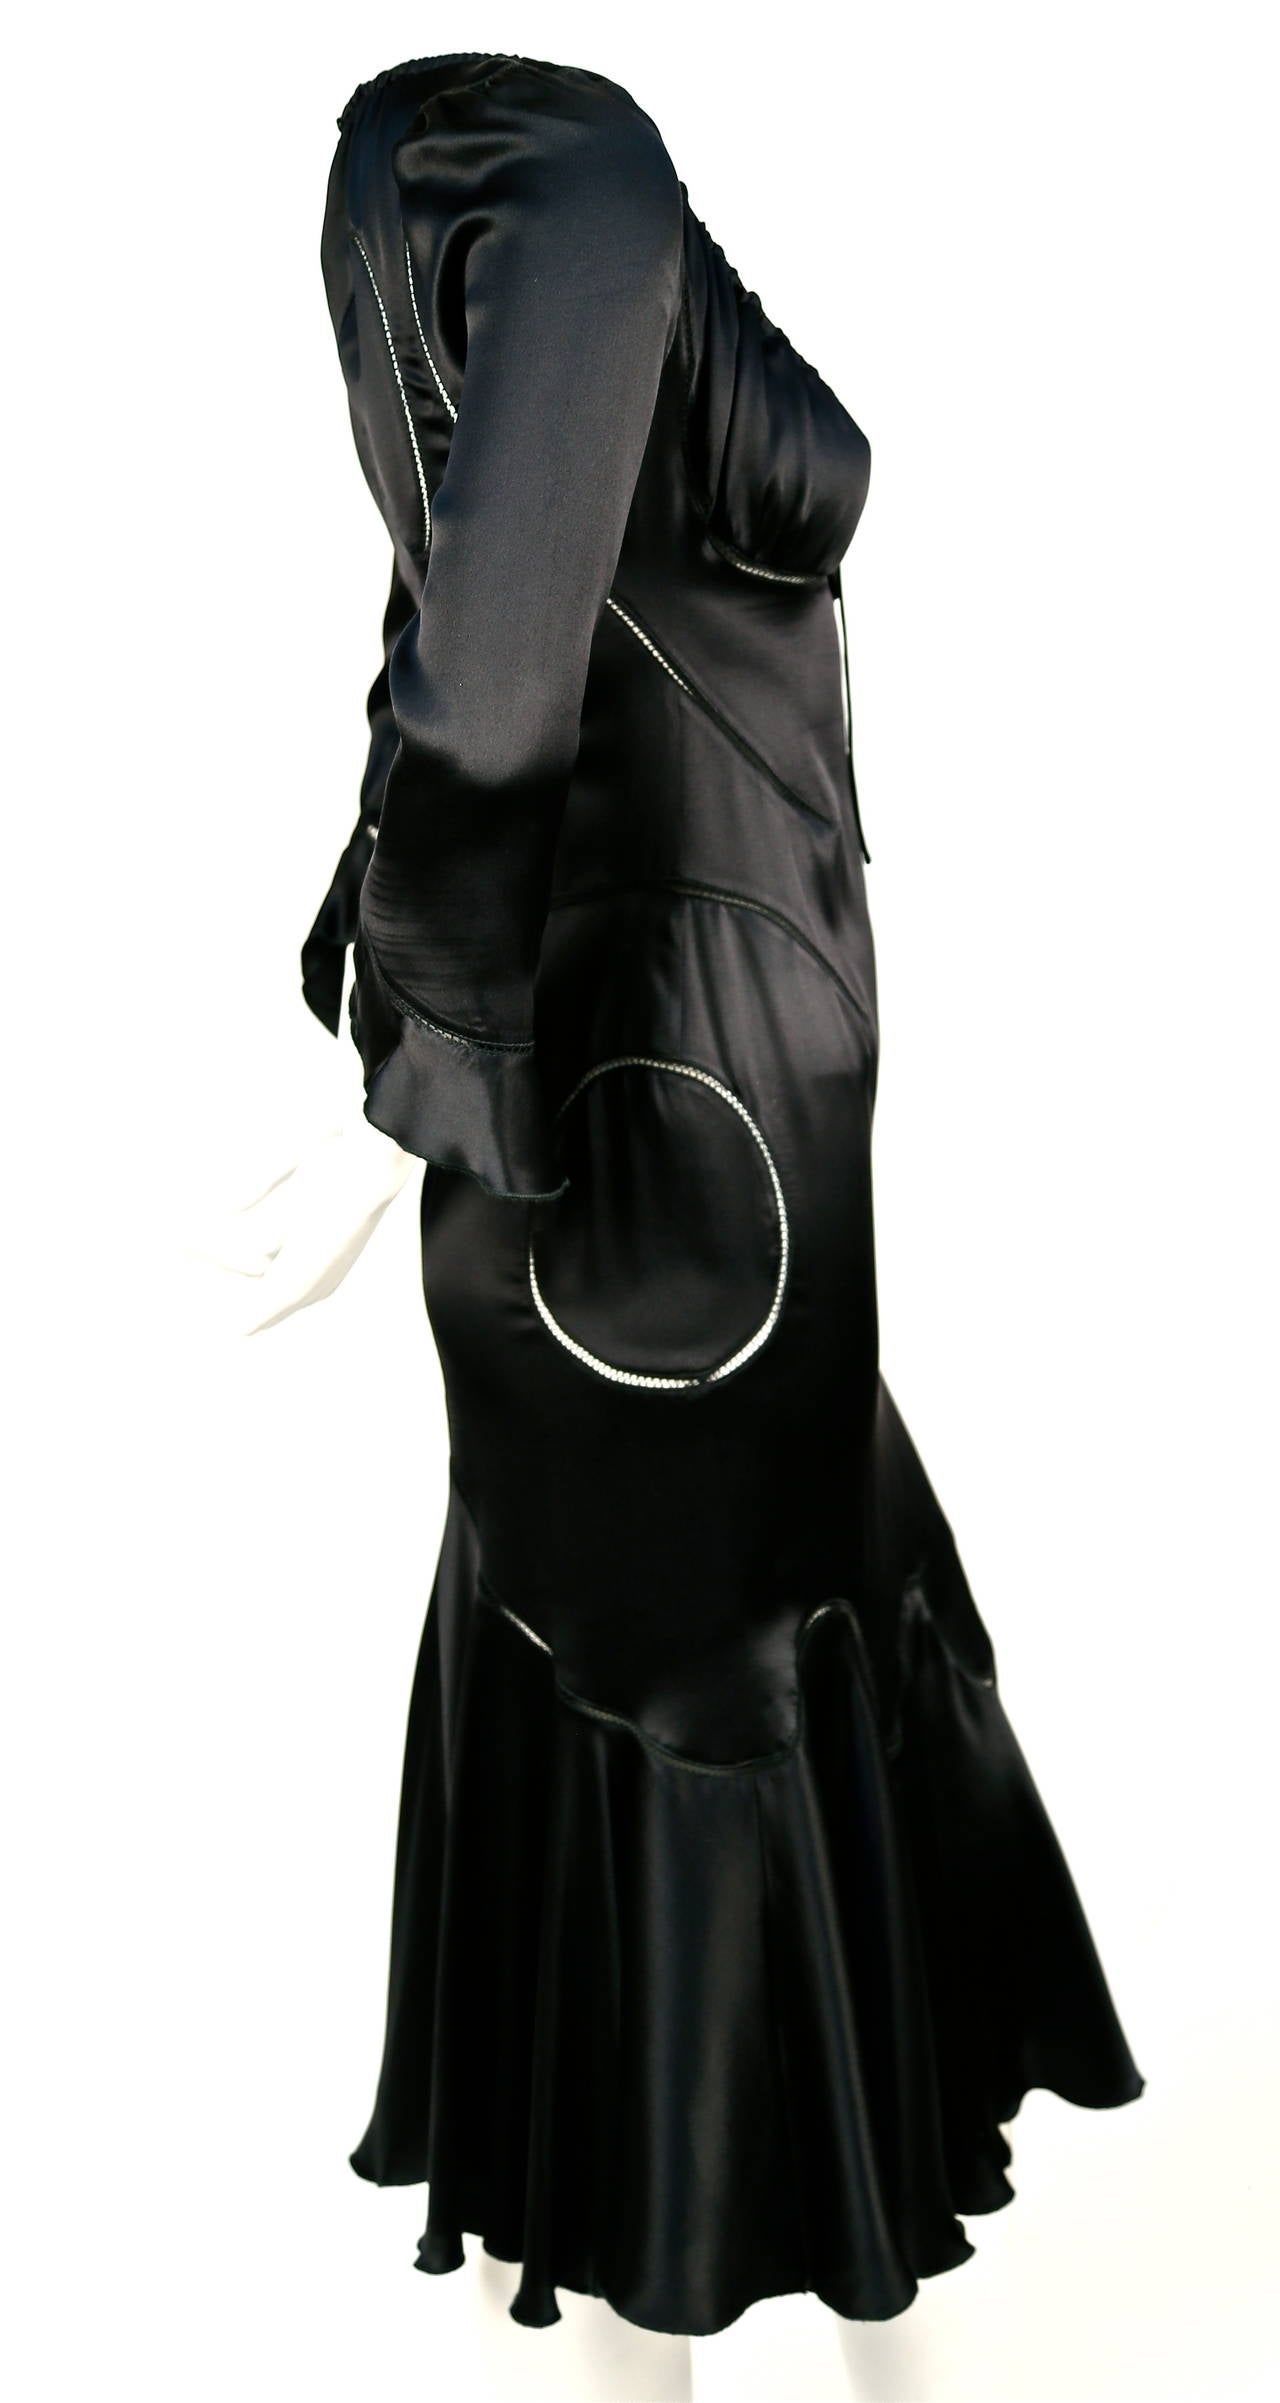 Very rare jet black silk charmeuse dress with open stitched seaming created by Alexander McQueen for the Fall 2002 'Supercalifragilisticexpialidocious' runway collection. No size is indicated although this dress best fits a size 2 or 4. Approximate